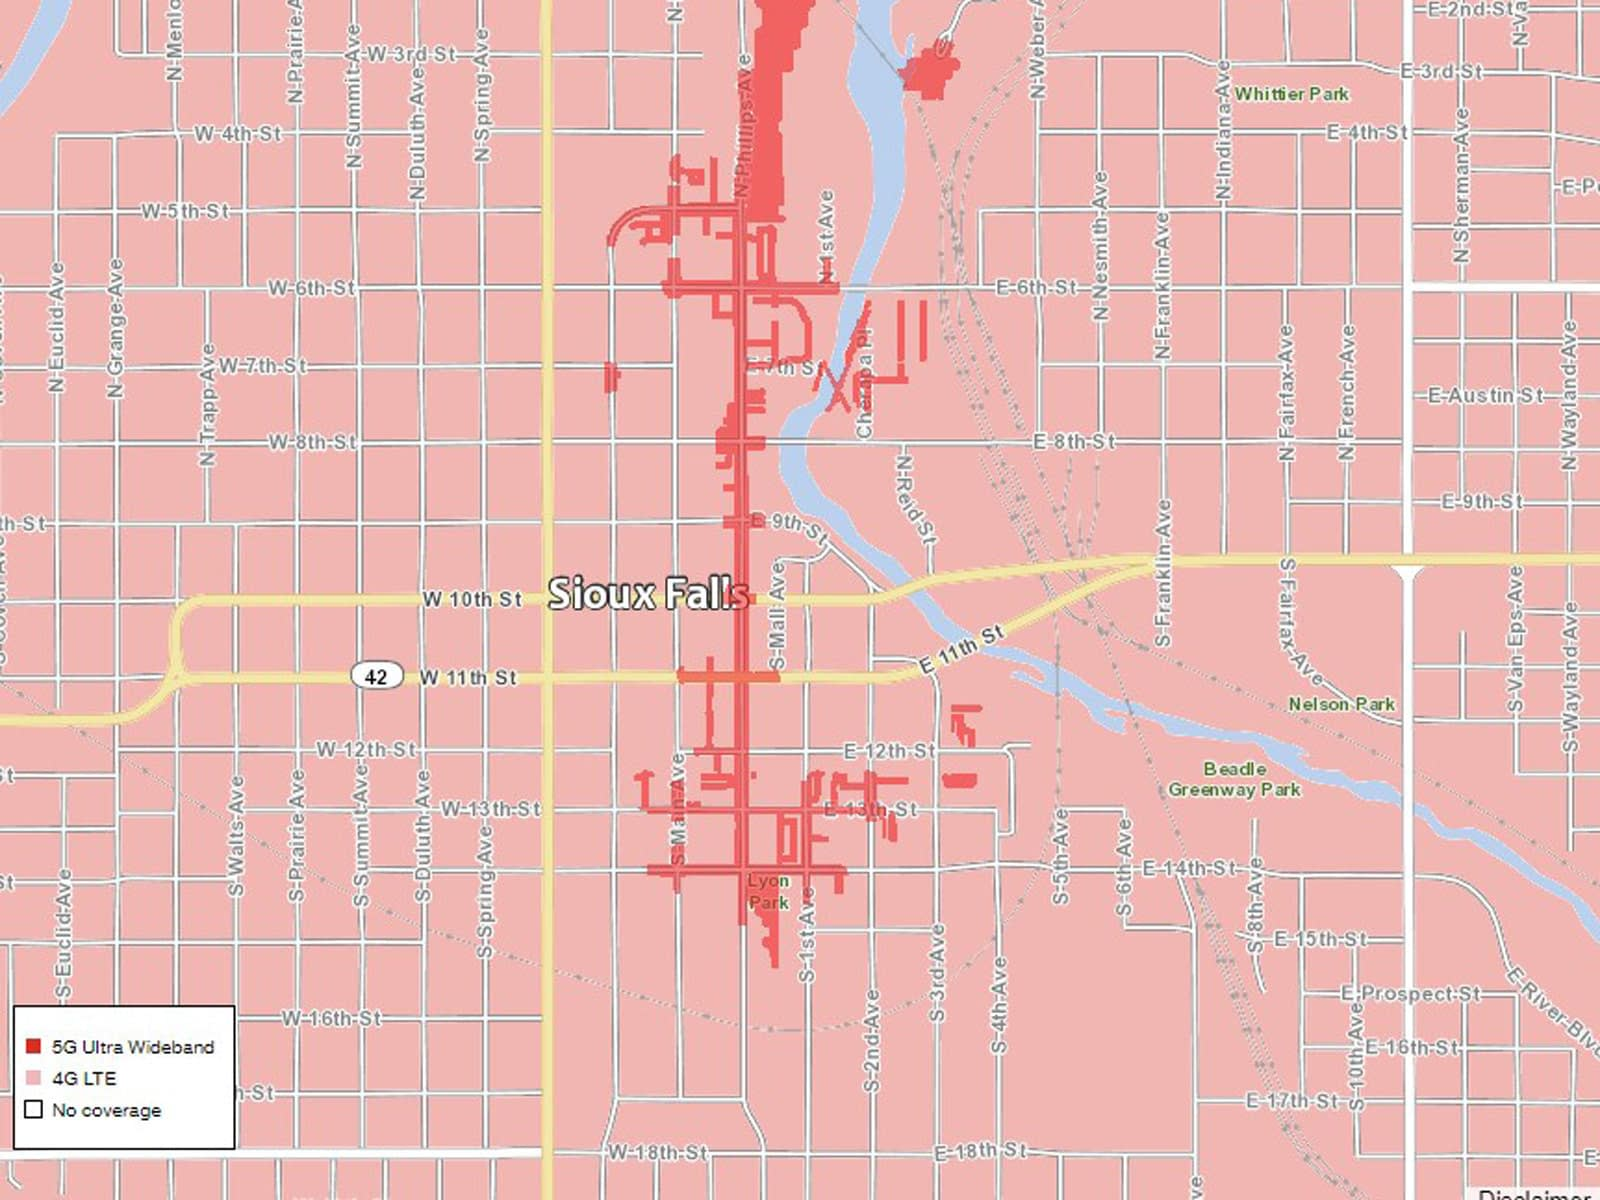 Verizon Sioux Falls 5G coverage map